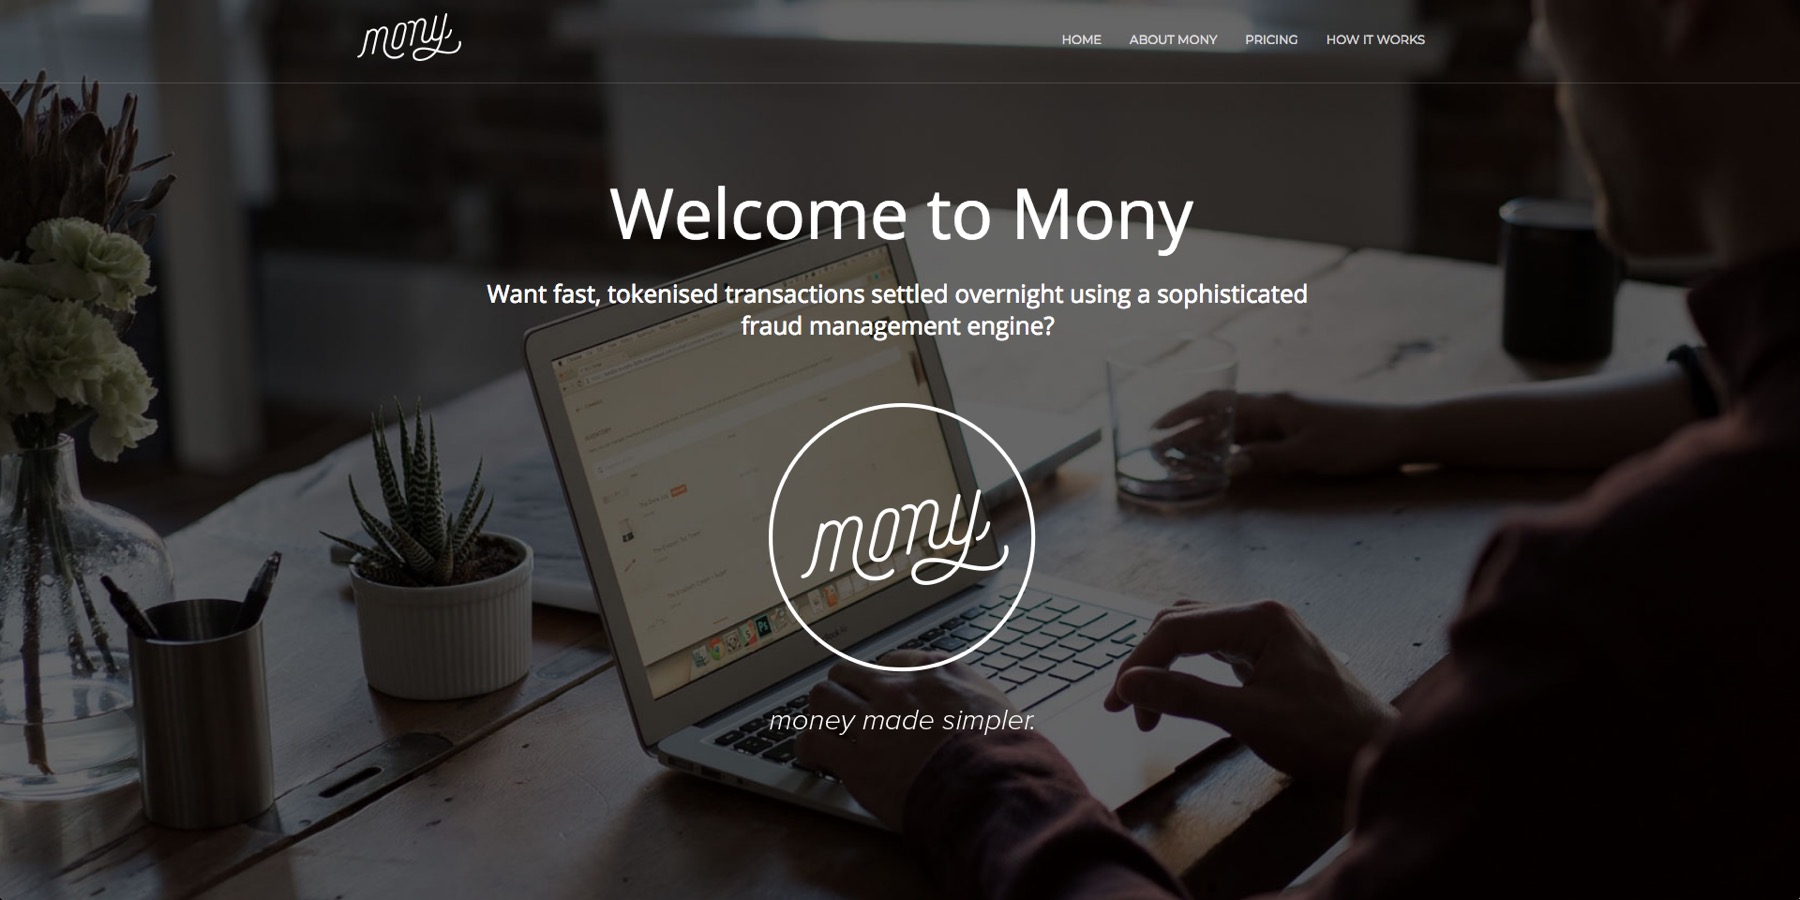 mony payments website developed by motherlode agency